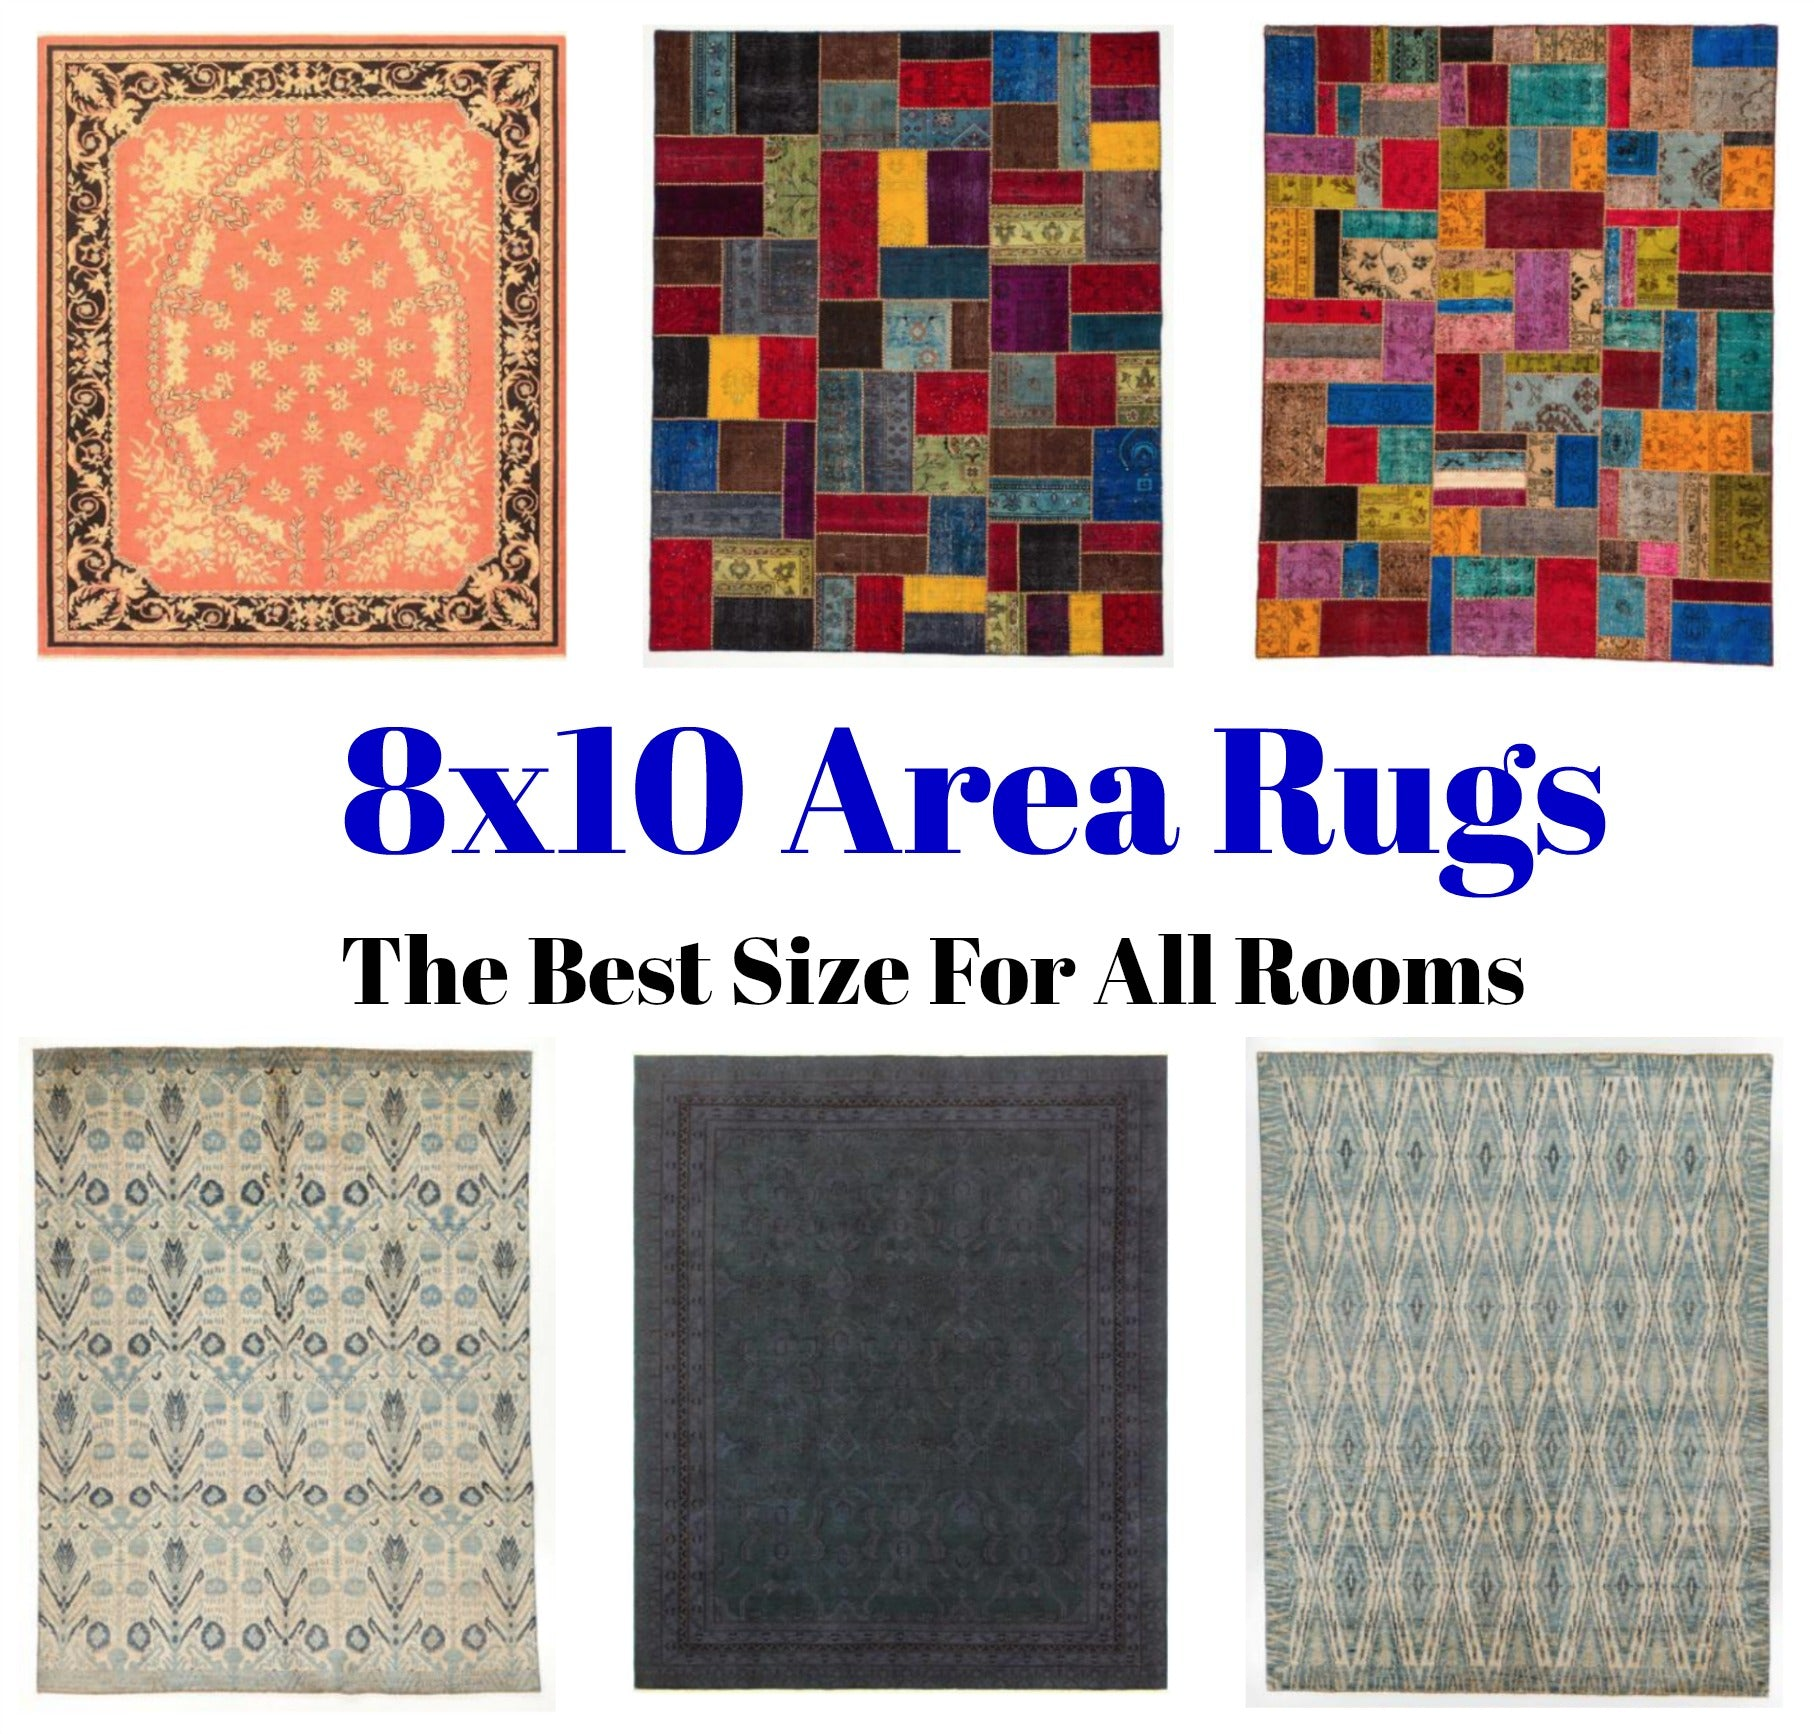 plus all our rugs are hand knotted this all produces a rug of outstanding quality and beauty